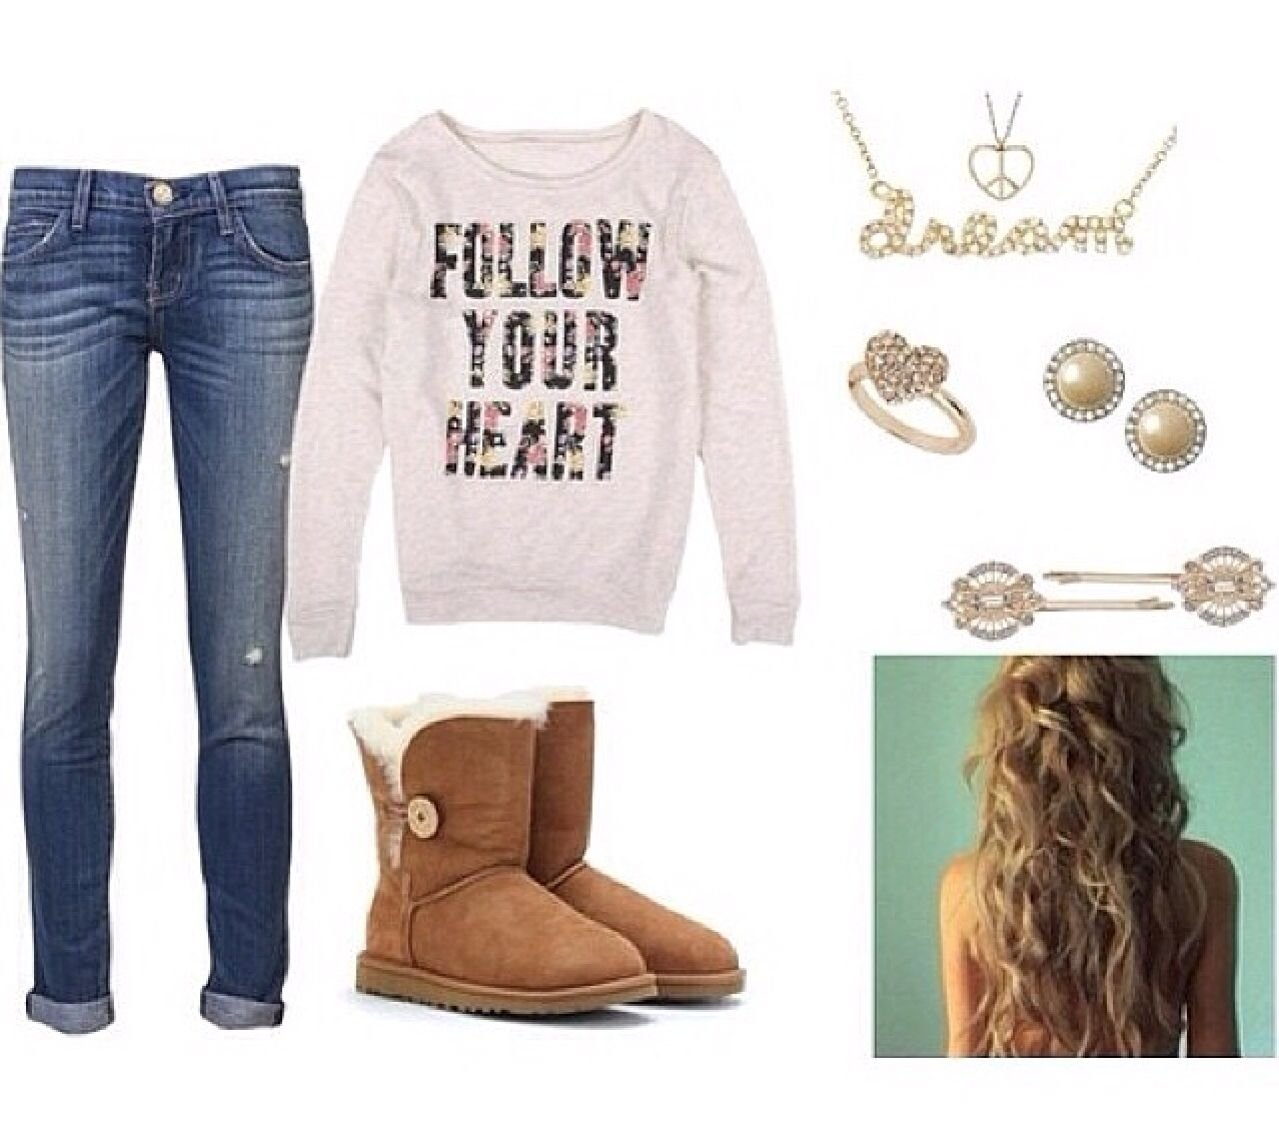 10 Awesome Cute Outfit Ideas For Middle School pinlauryn perego on cute outfit ideas pinterest clothes 2020